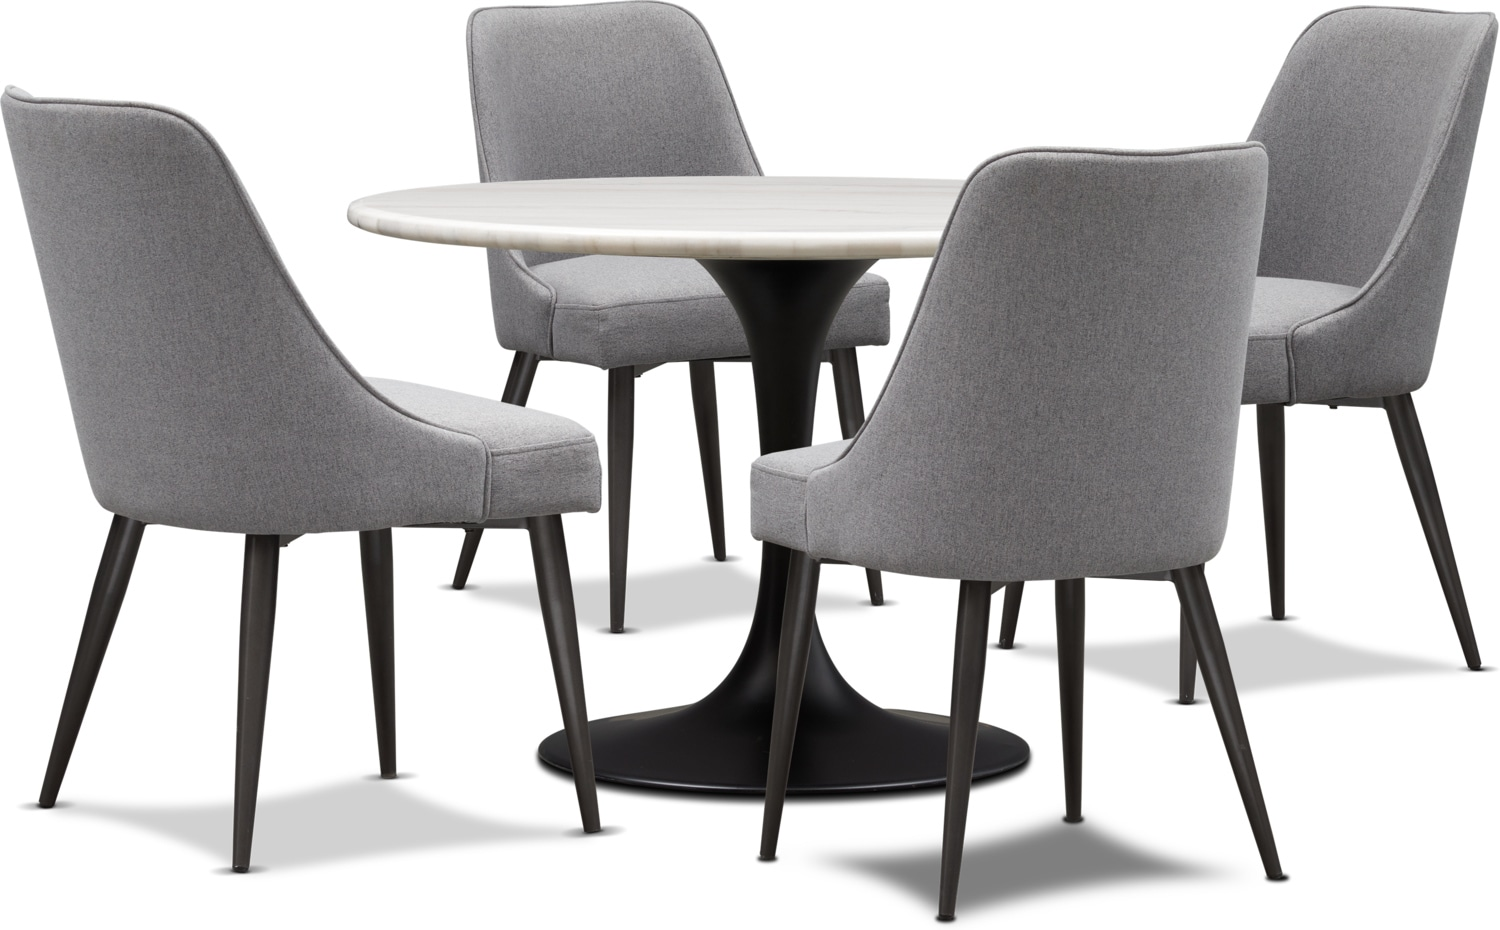 Dining Room Upholstered Chairs Lillian Dining Table And 4 Upholstered Side Chairs